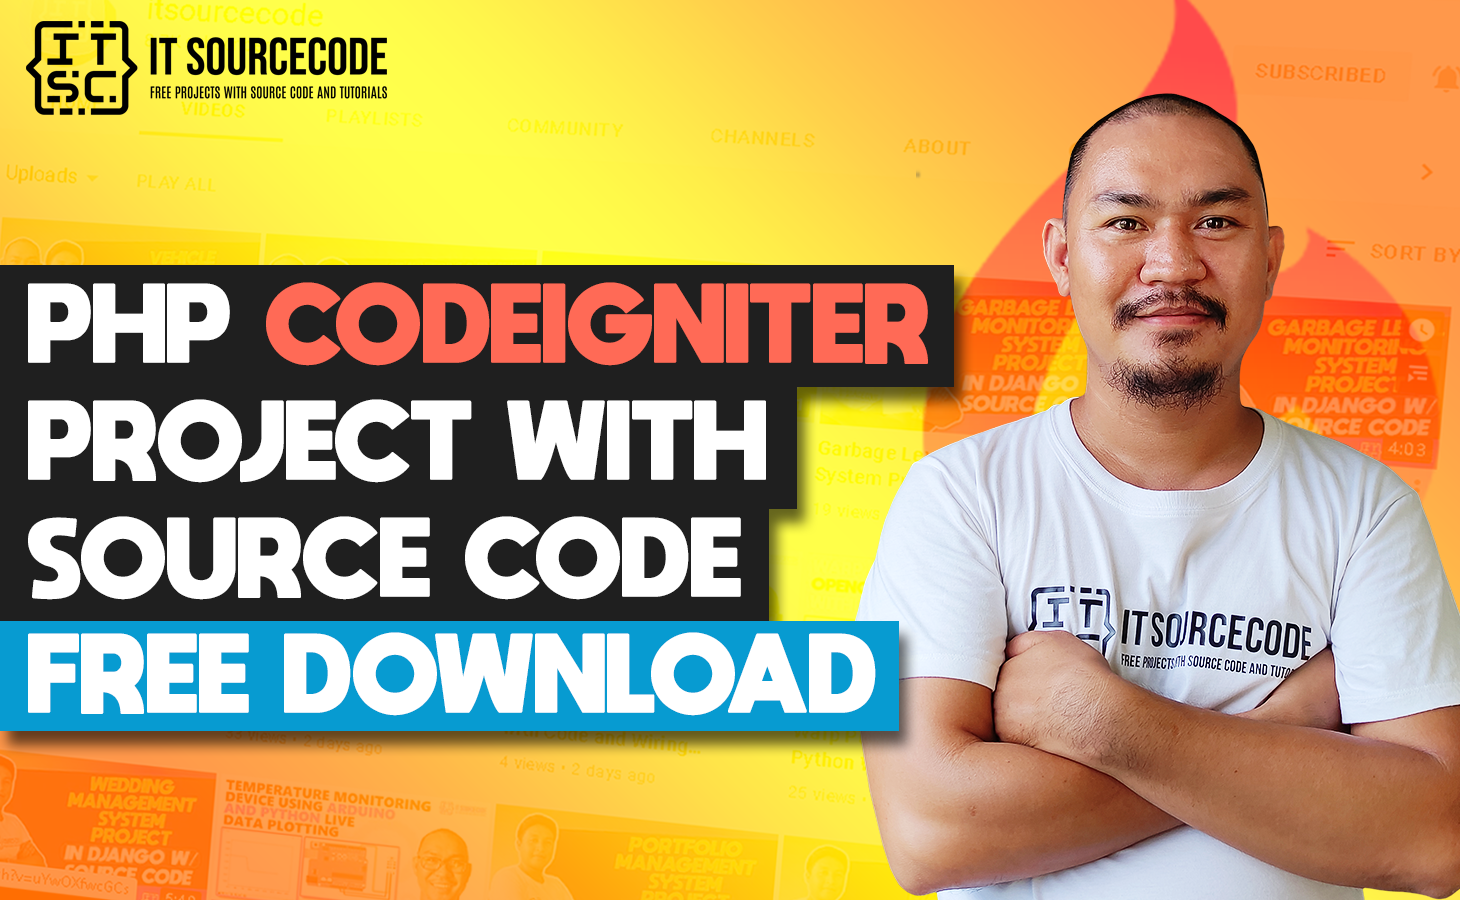 PHP CodeIgniter Project With Source Code Free Download